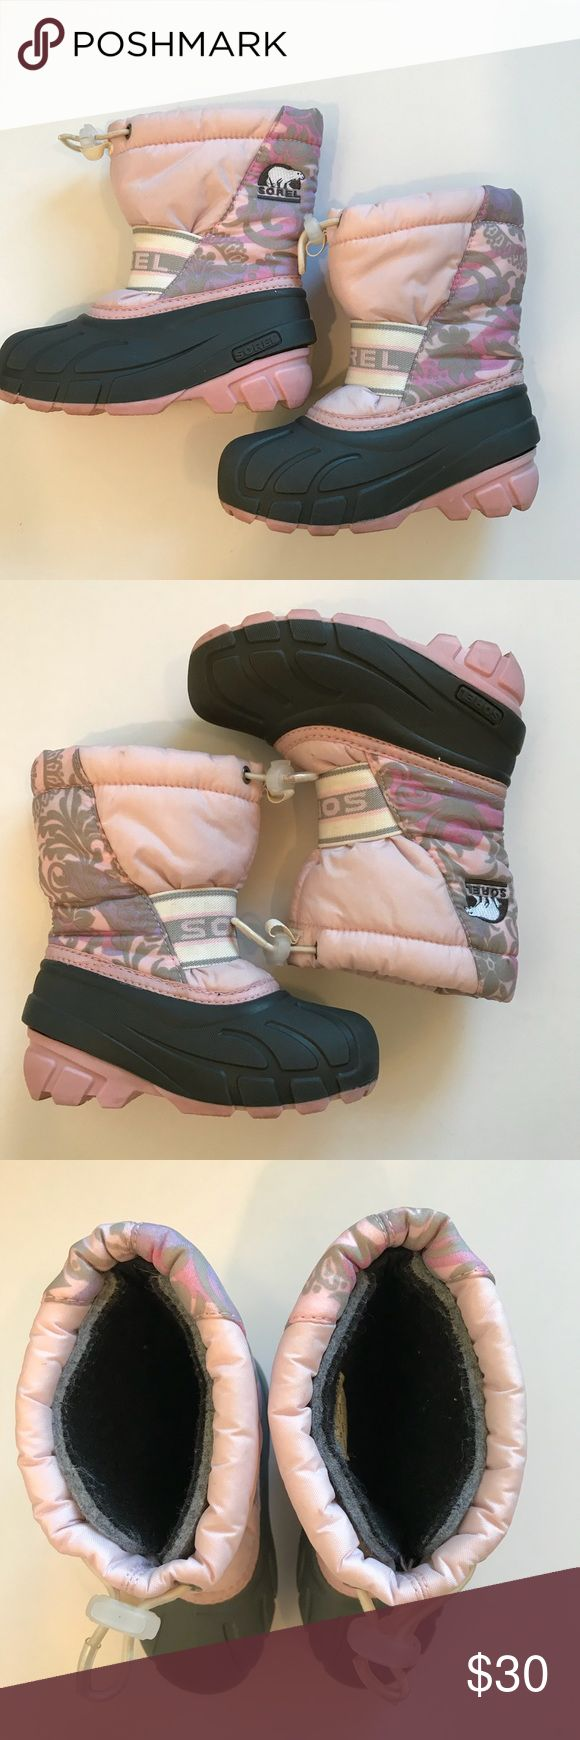 Sorel boots Sorel snow boots. Size 10. Great for the snow. Cute print pink and gray. Very good condition. Sorel Shoes Rain & Snow Boots